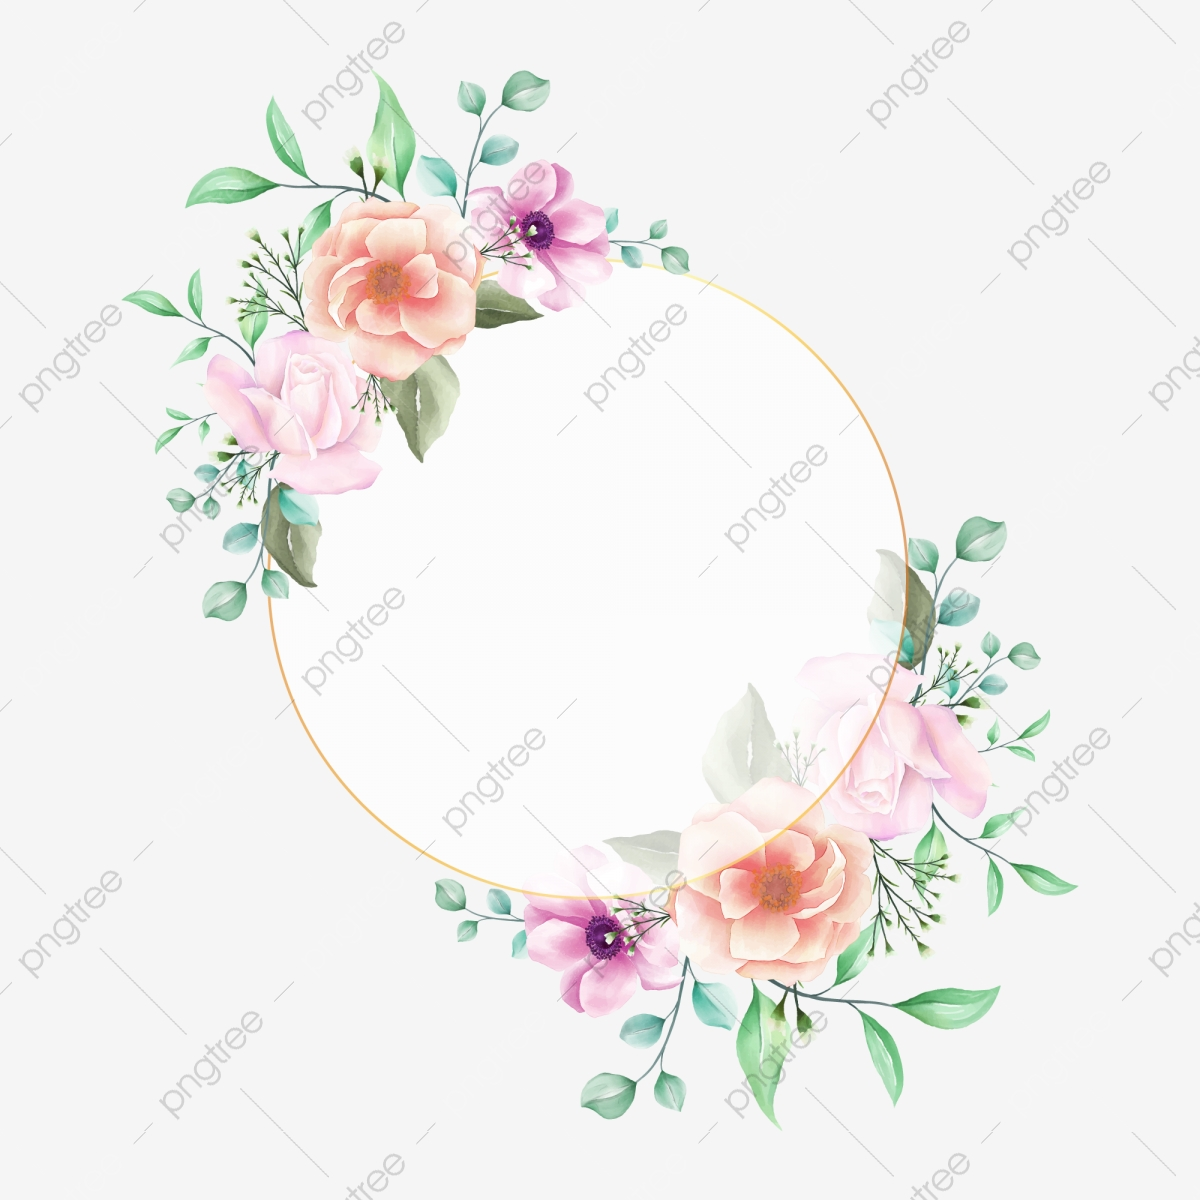 Floral Frame Watercolor Invitation Design Concept With Peonies